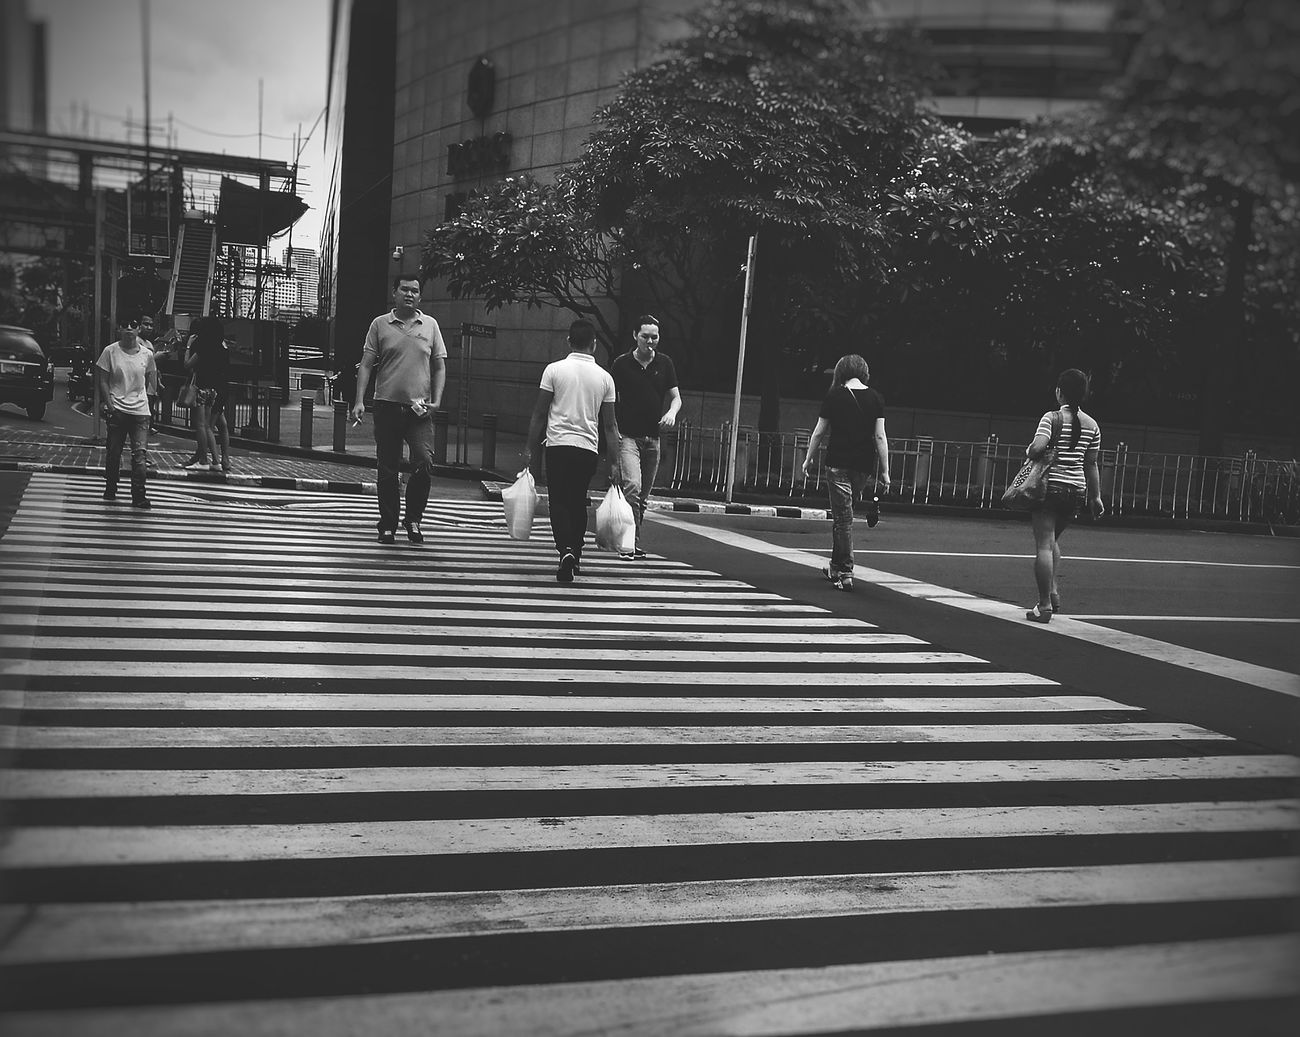 it's already there, all you gotta do is step on it. still, they didn't. 😶 Street City Shadow Adults Only Outdoors Street Art EyeEmNewHere EyeEmBestPics Eyeem Philippines EyeEm Best Shots Photooftheday Streetphotography Street Life Cityscape First Eyeem Photo City Street People Streetphoto_bw Blackandwhite Black & White Blackandwhite Photography Blackandwhitephotography Lines Lines And Shadows Lineart Welcome To Black Long Goodbye